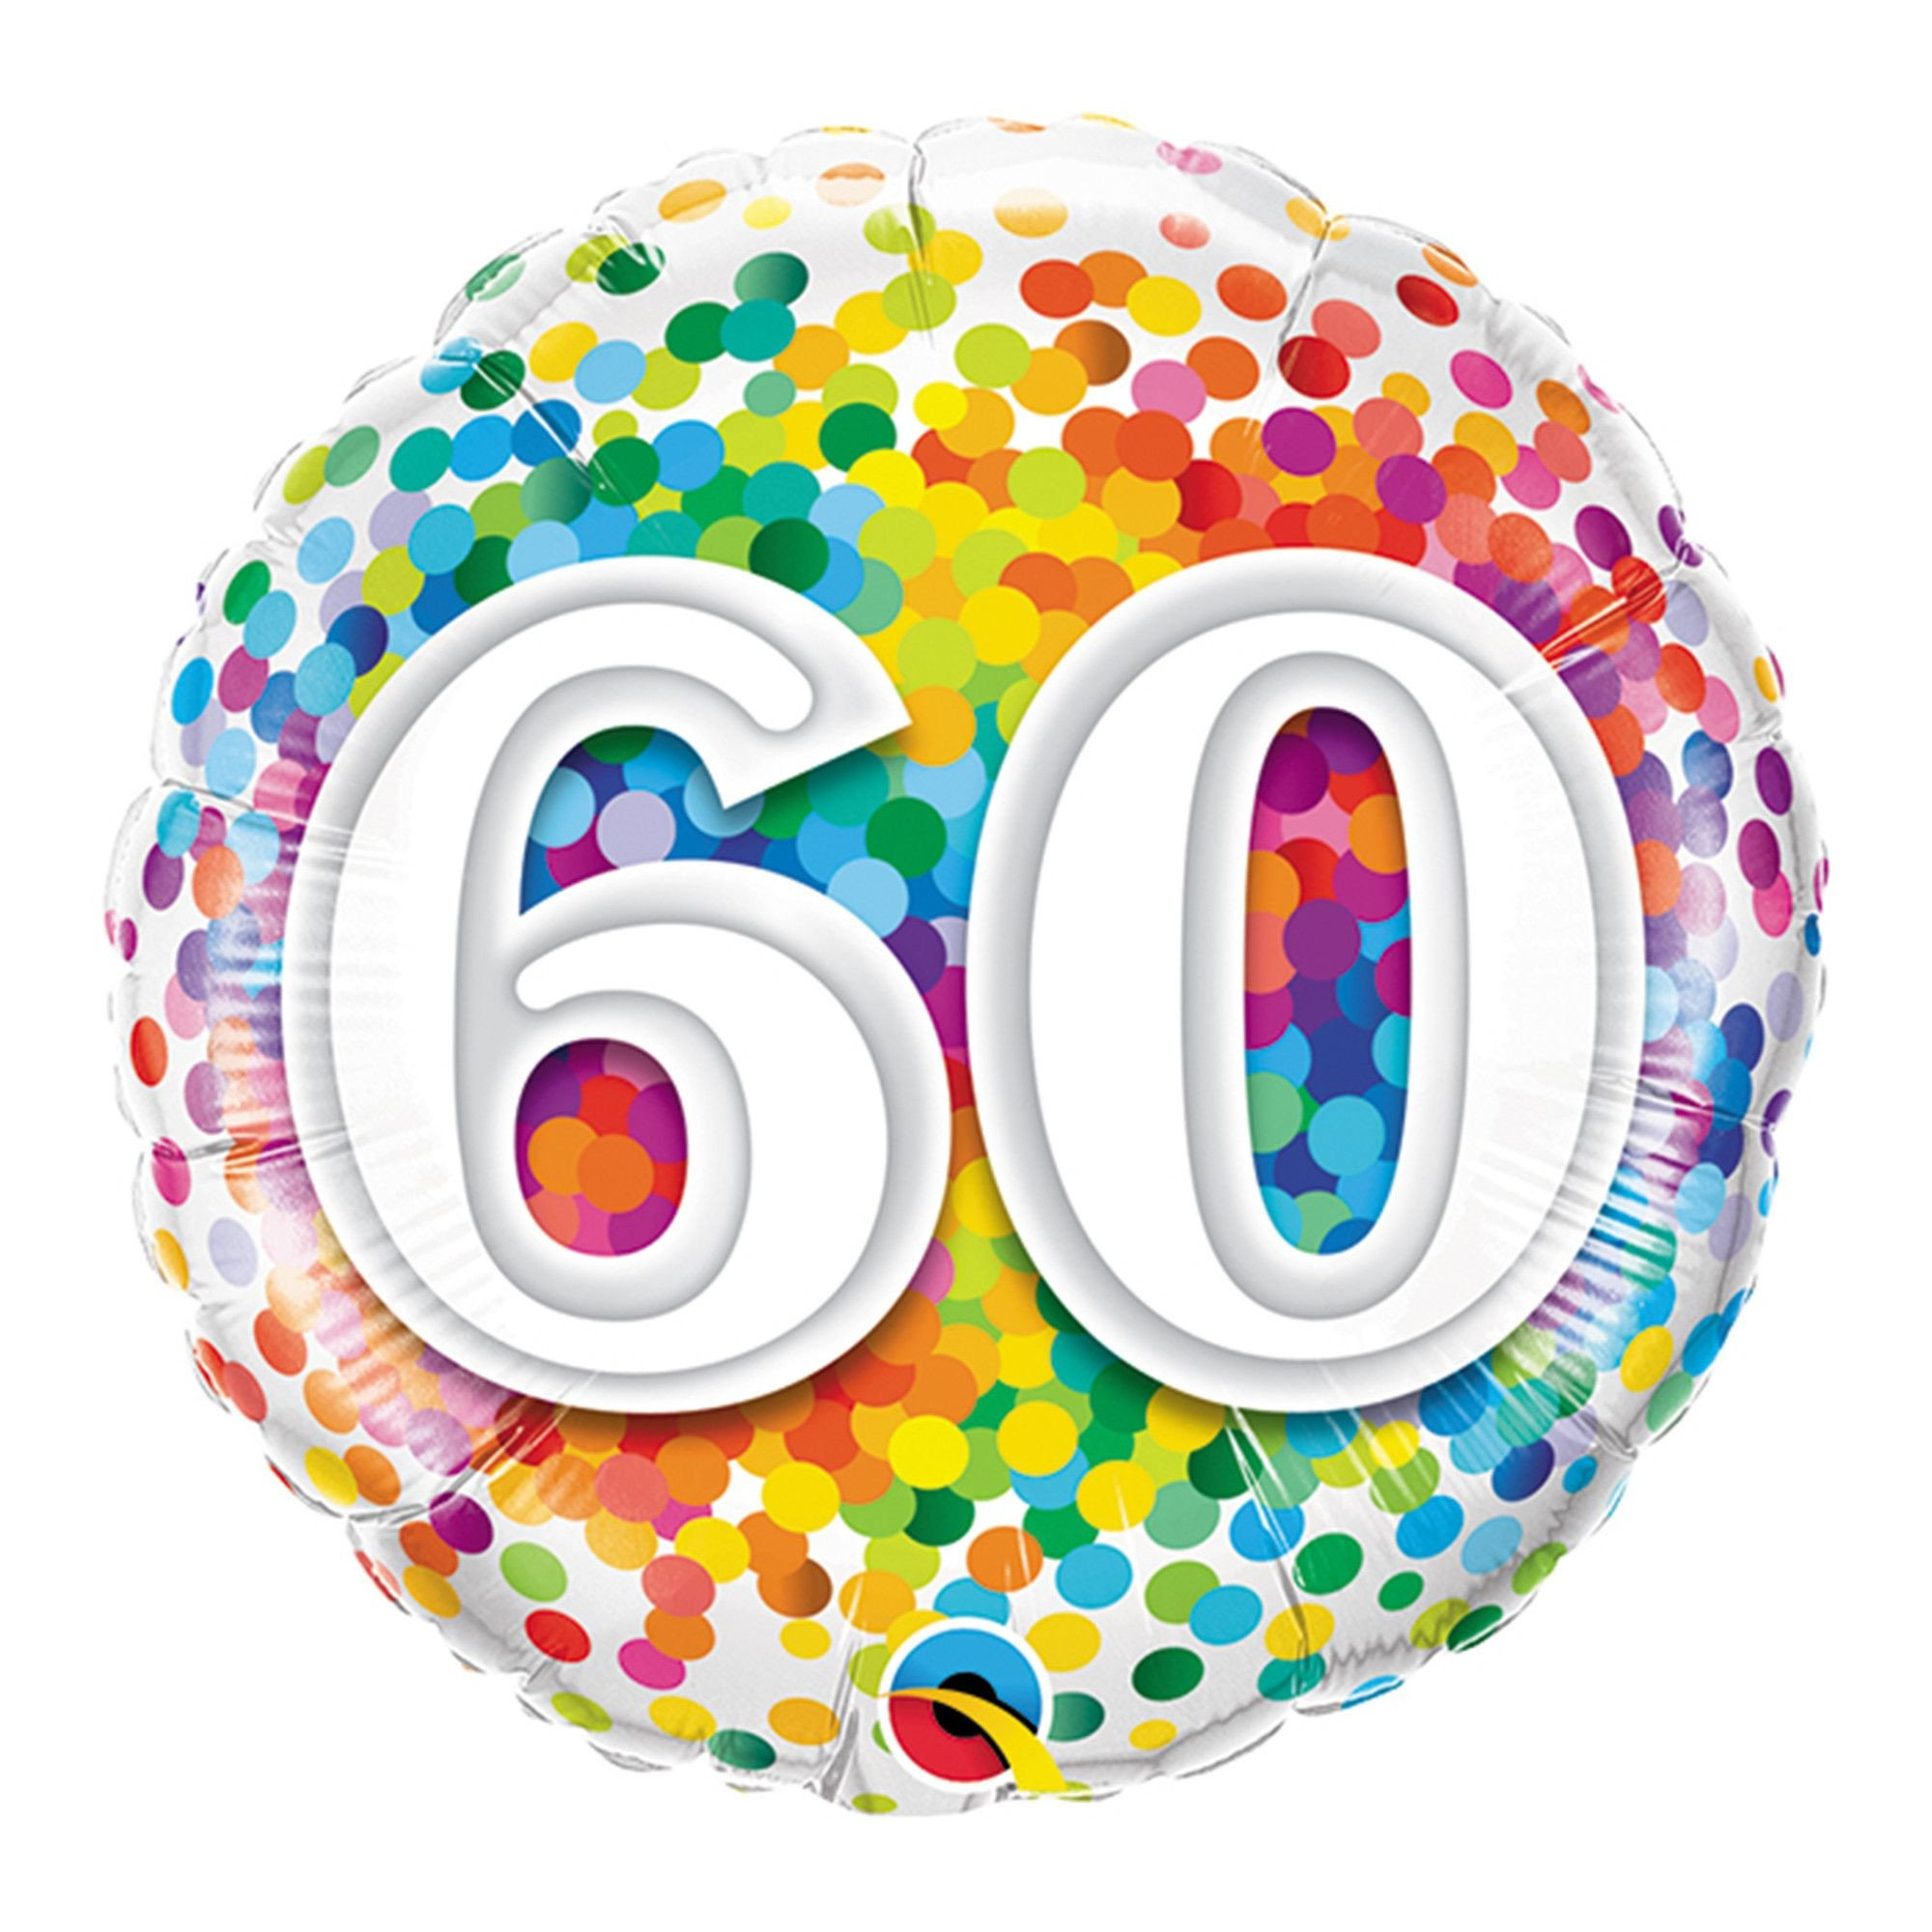 Celebrate The 60th Birthday In Style